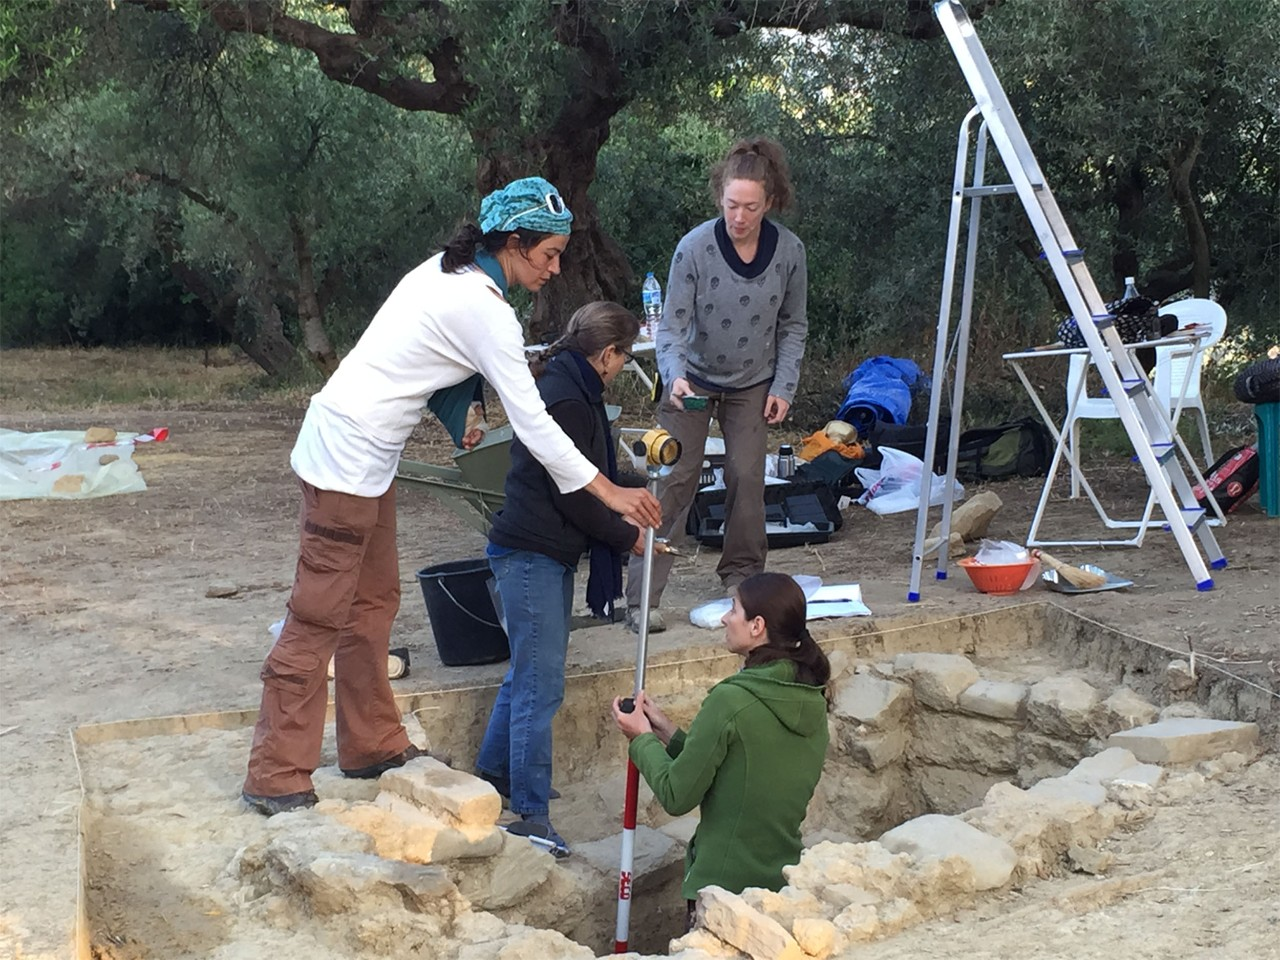 Team of archaeologists working over an excavation site